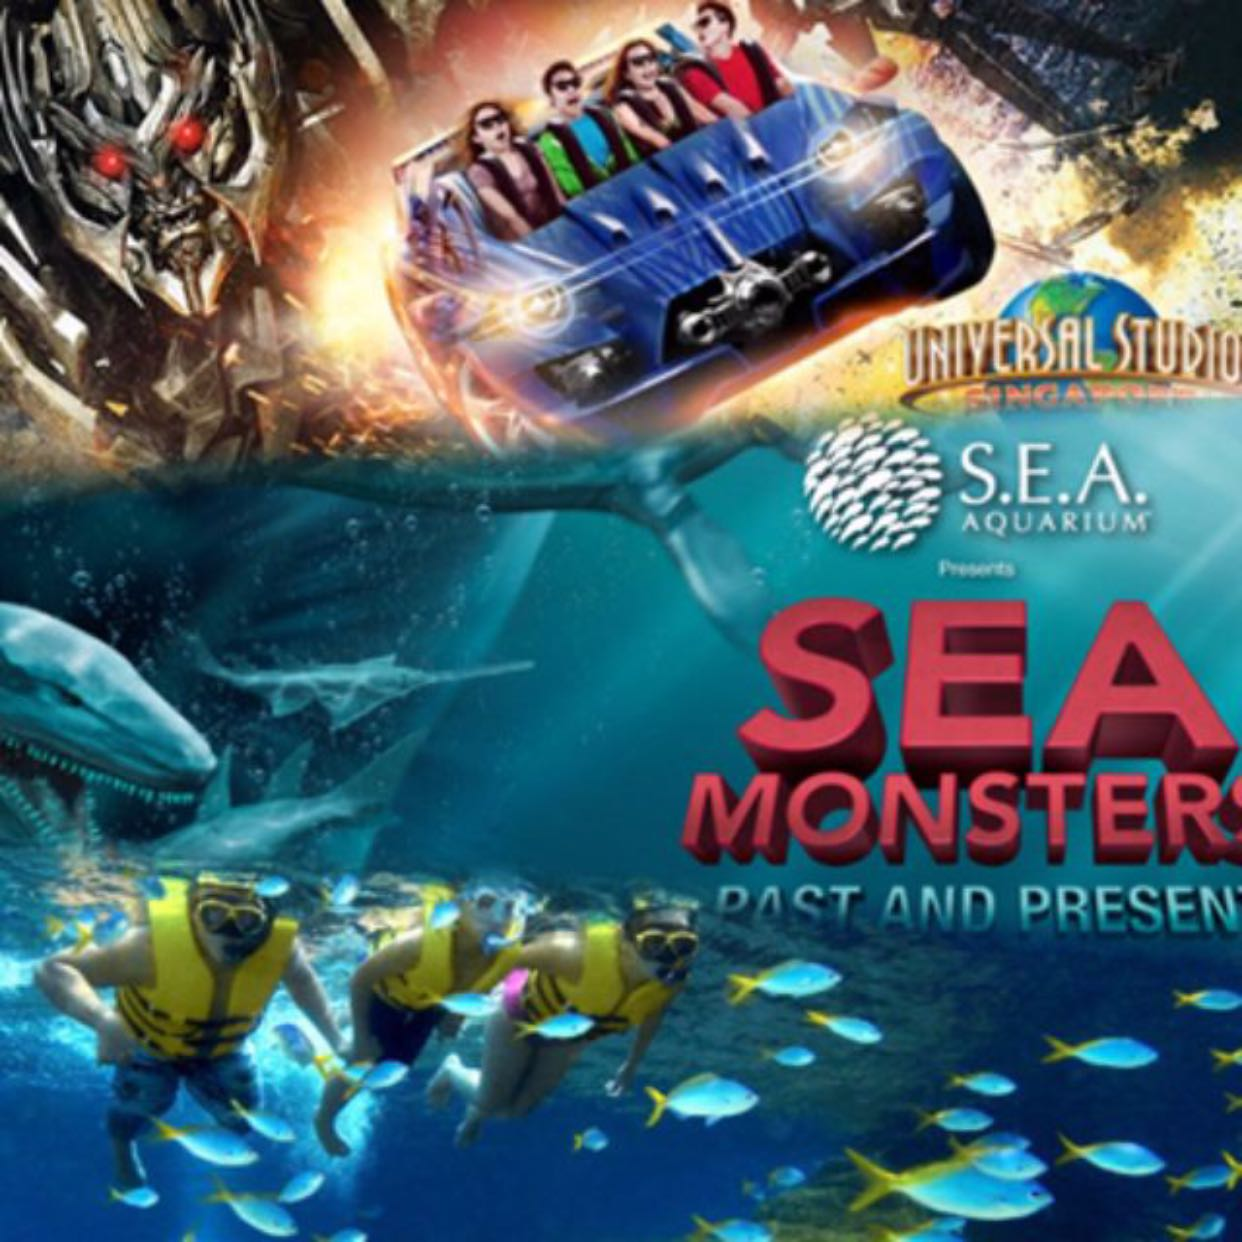 DAILY TICKETS for OdySea Aquarium OdySea Aquarium Tickets Includes access to all OdySea Aquarium exhibits, galleries, OdySea Voyager, and the movie featuring Underwater Giants.